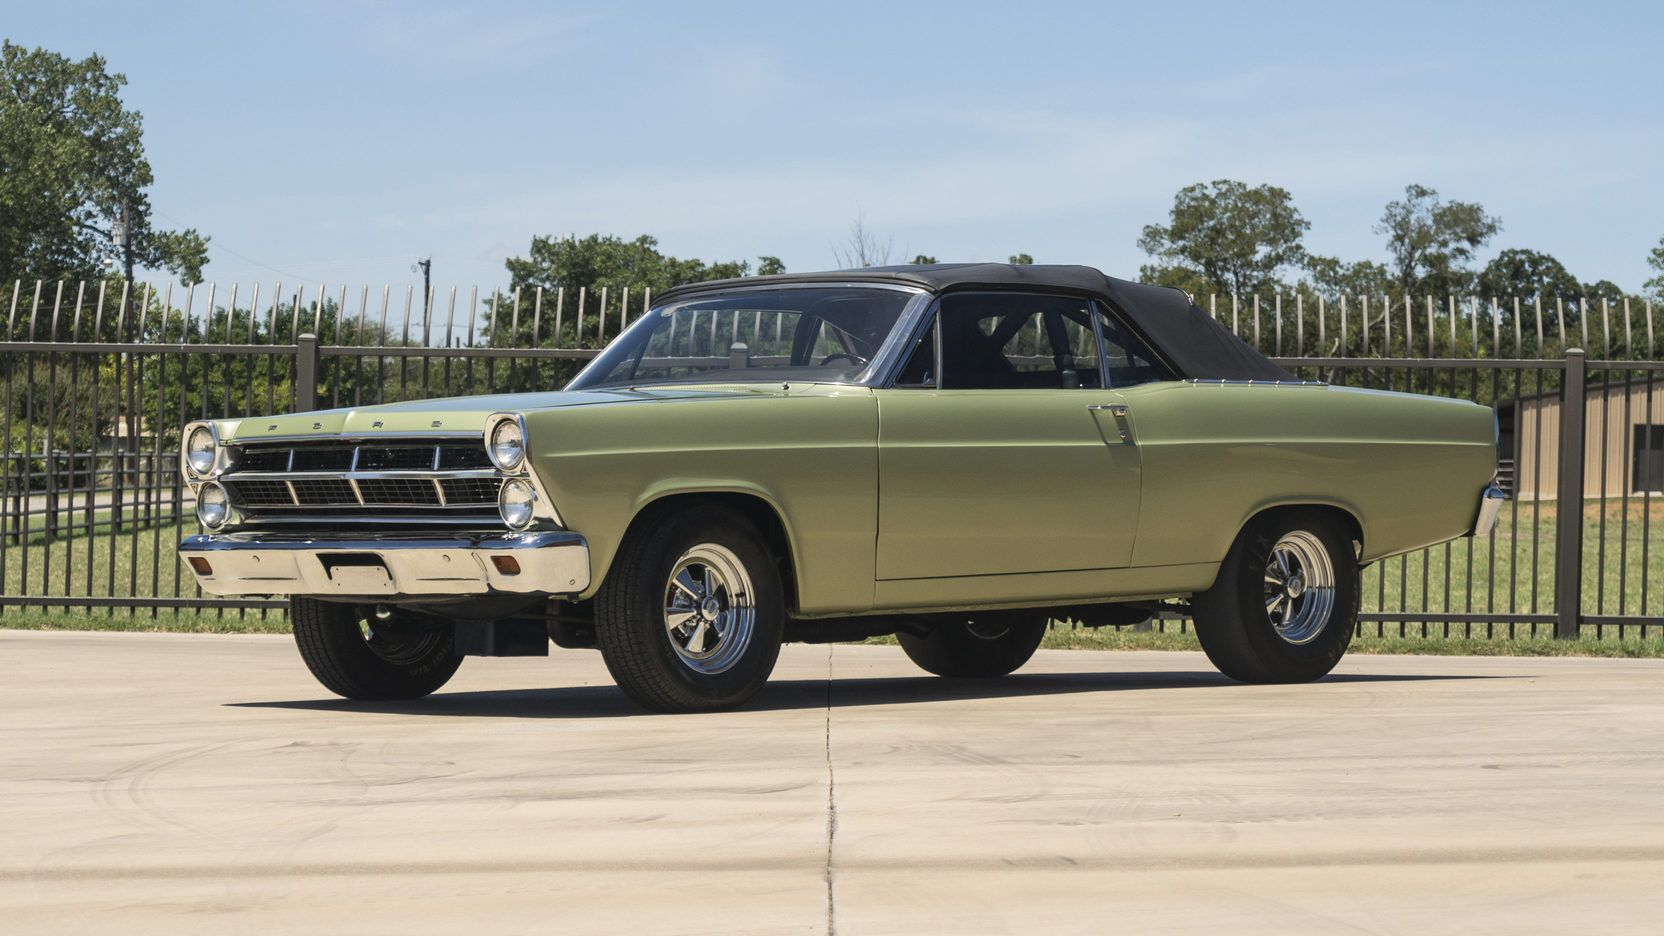 1967 Ford Fairlane Race Car Presented As Lot S162 At Dallas Tx Ford Fairlane Fairlane Ford